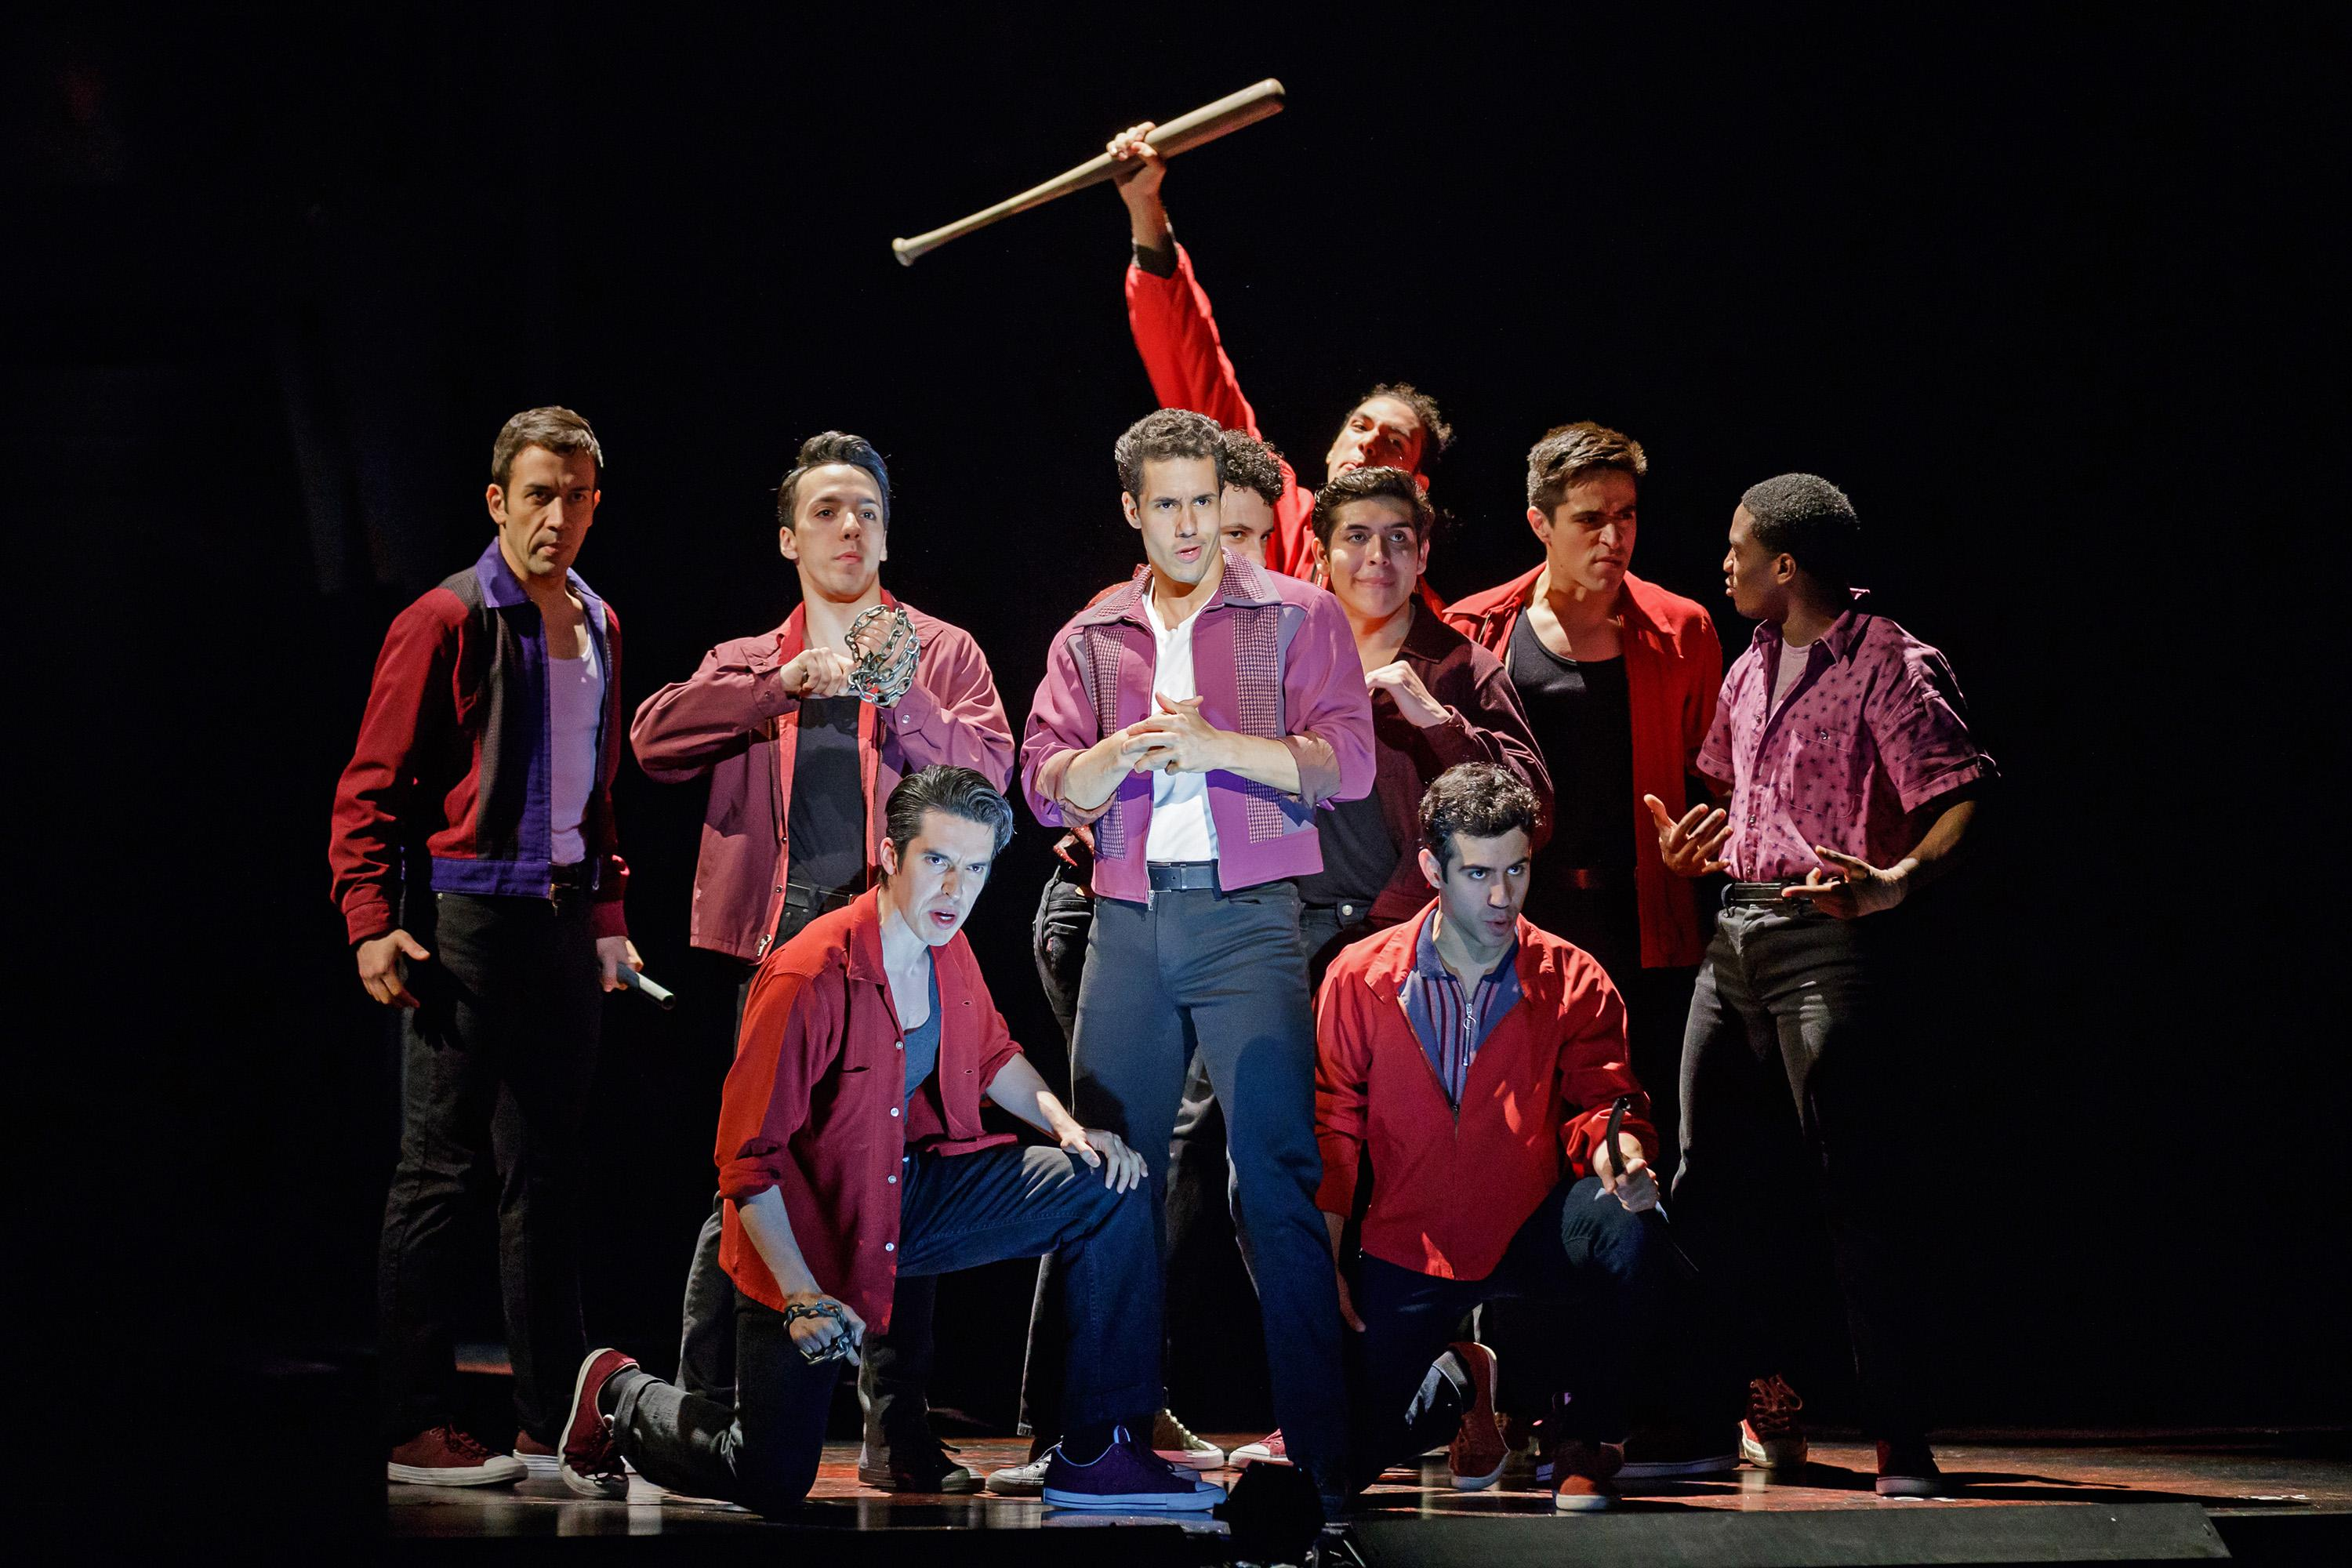 Alexander Gil Cruz as Bernardo and the cast of West Side Story at The 5th Avenue Theatre (Photo Credit: Mark Kitaoka)